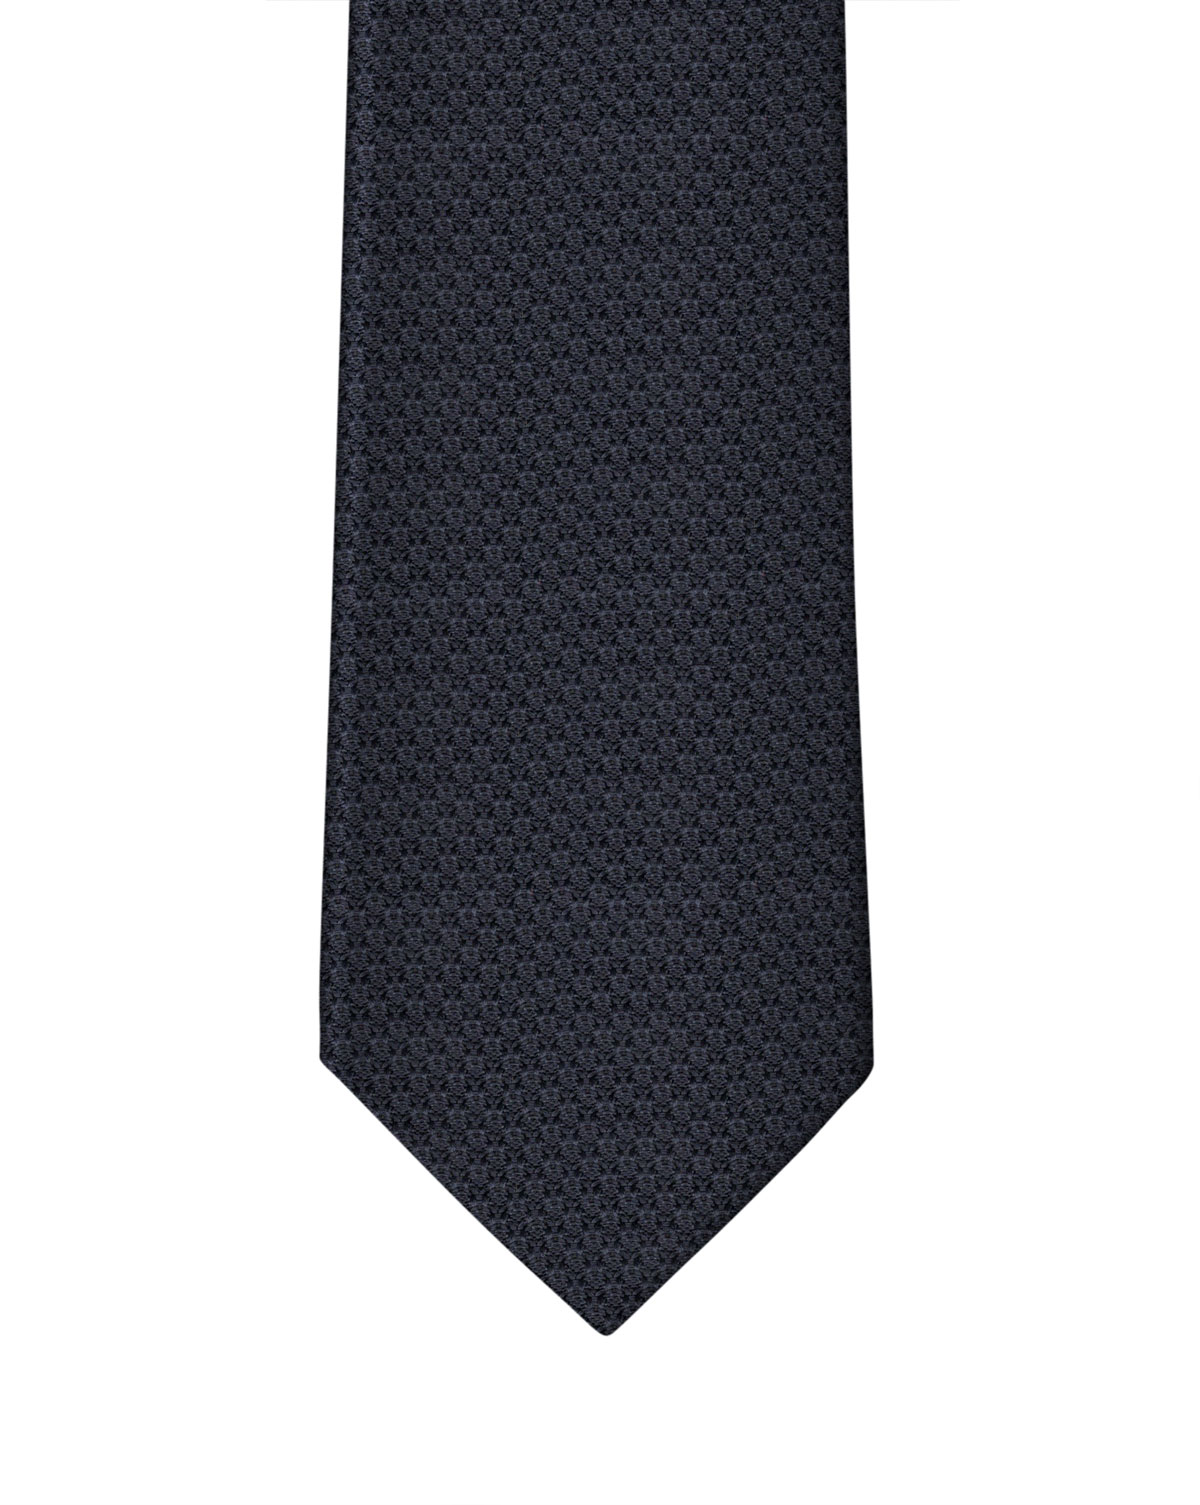 Midnight Blue Grenadine Necktie